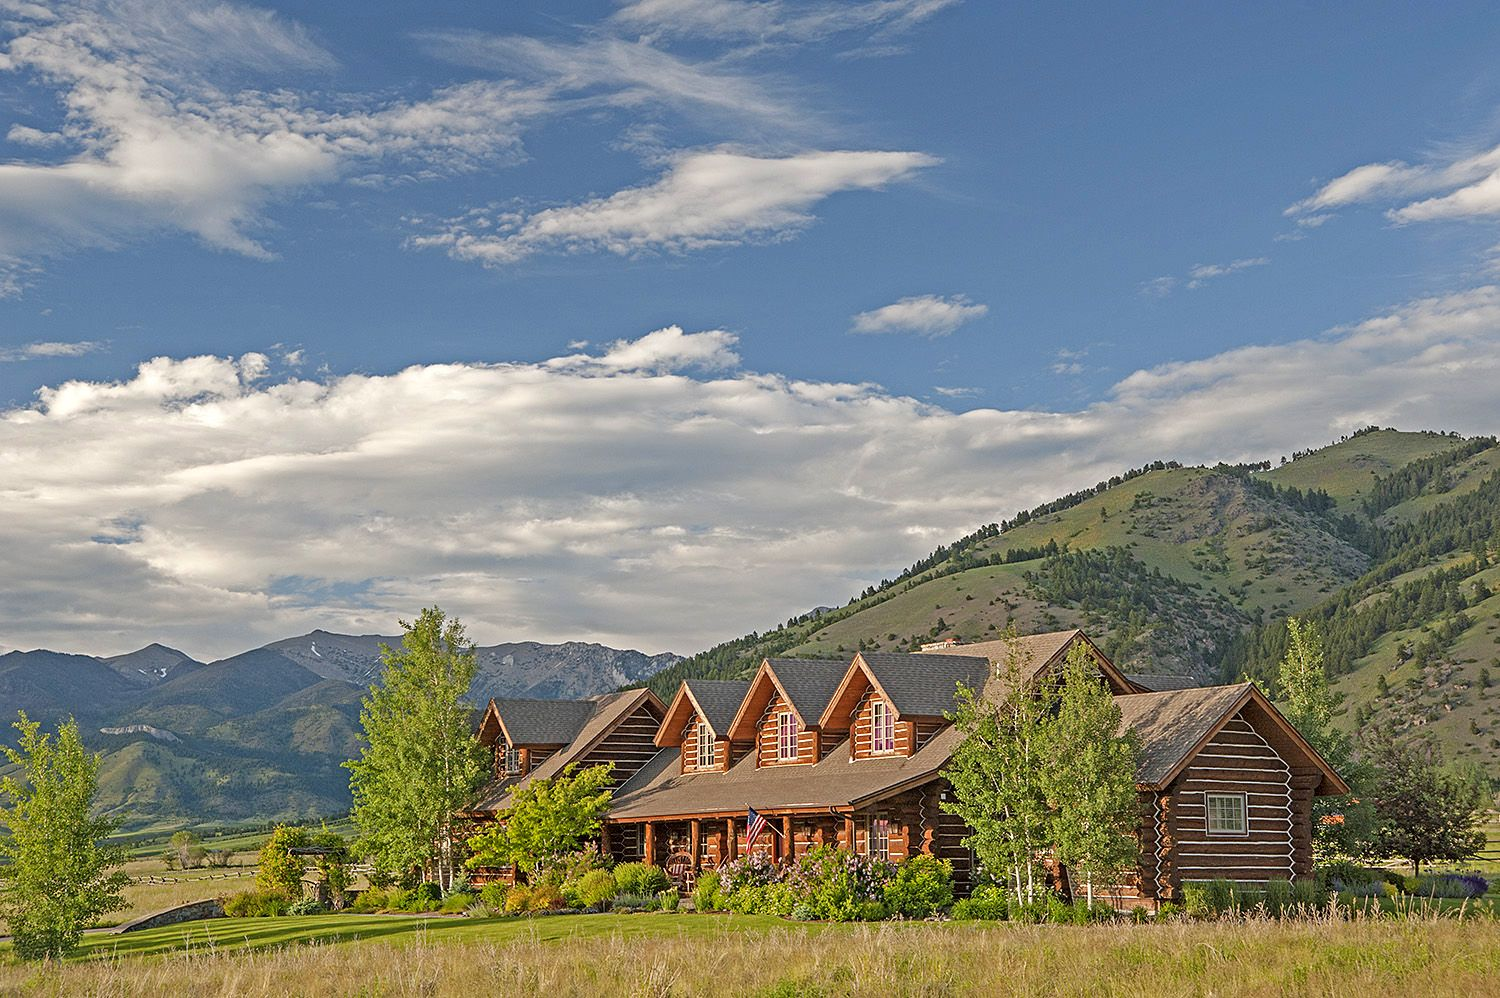 Western Chalet http://bozemanluxuryrealestate.com/listings/a-western-chalet/